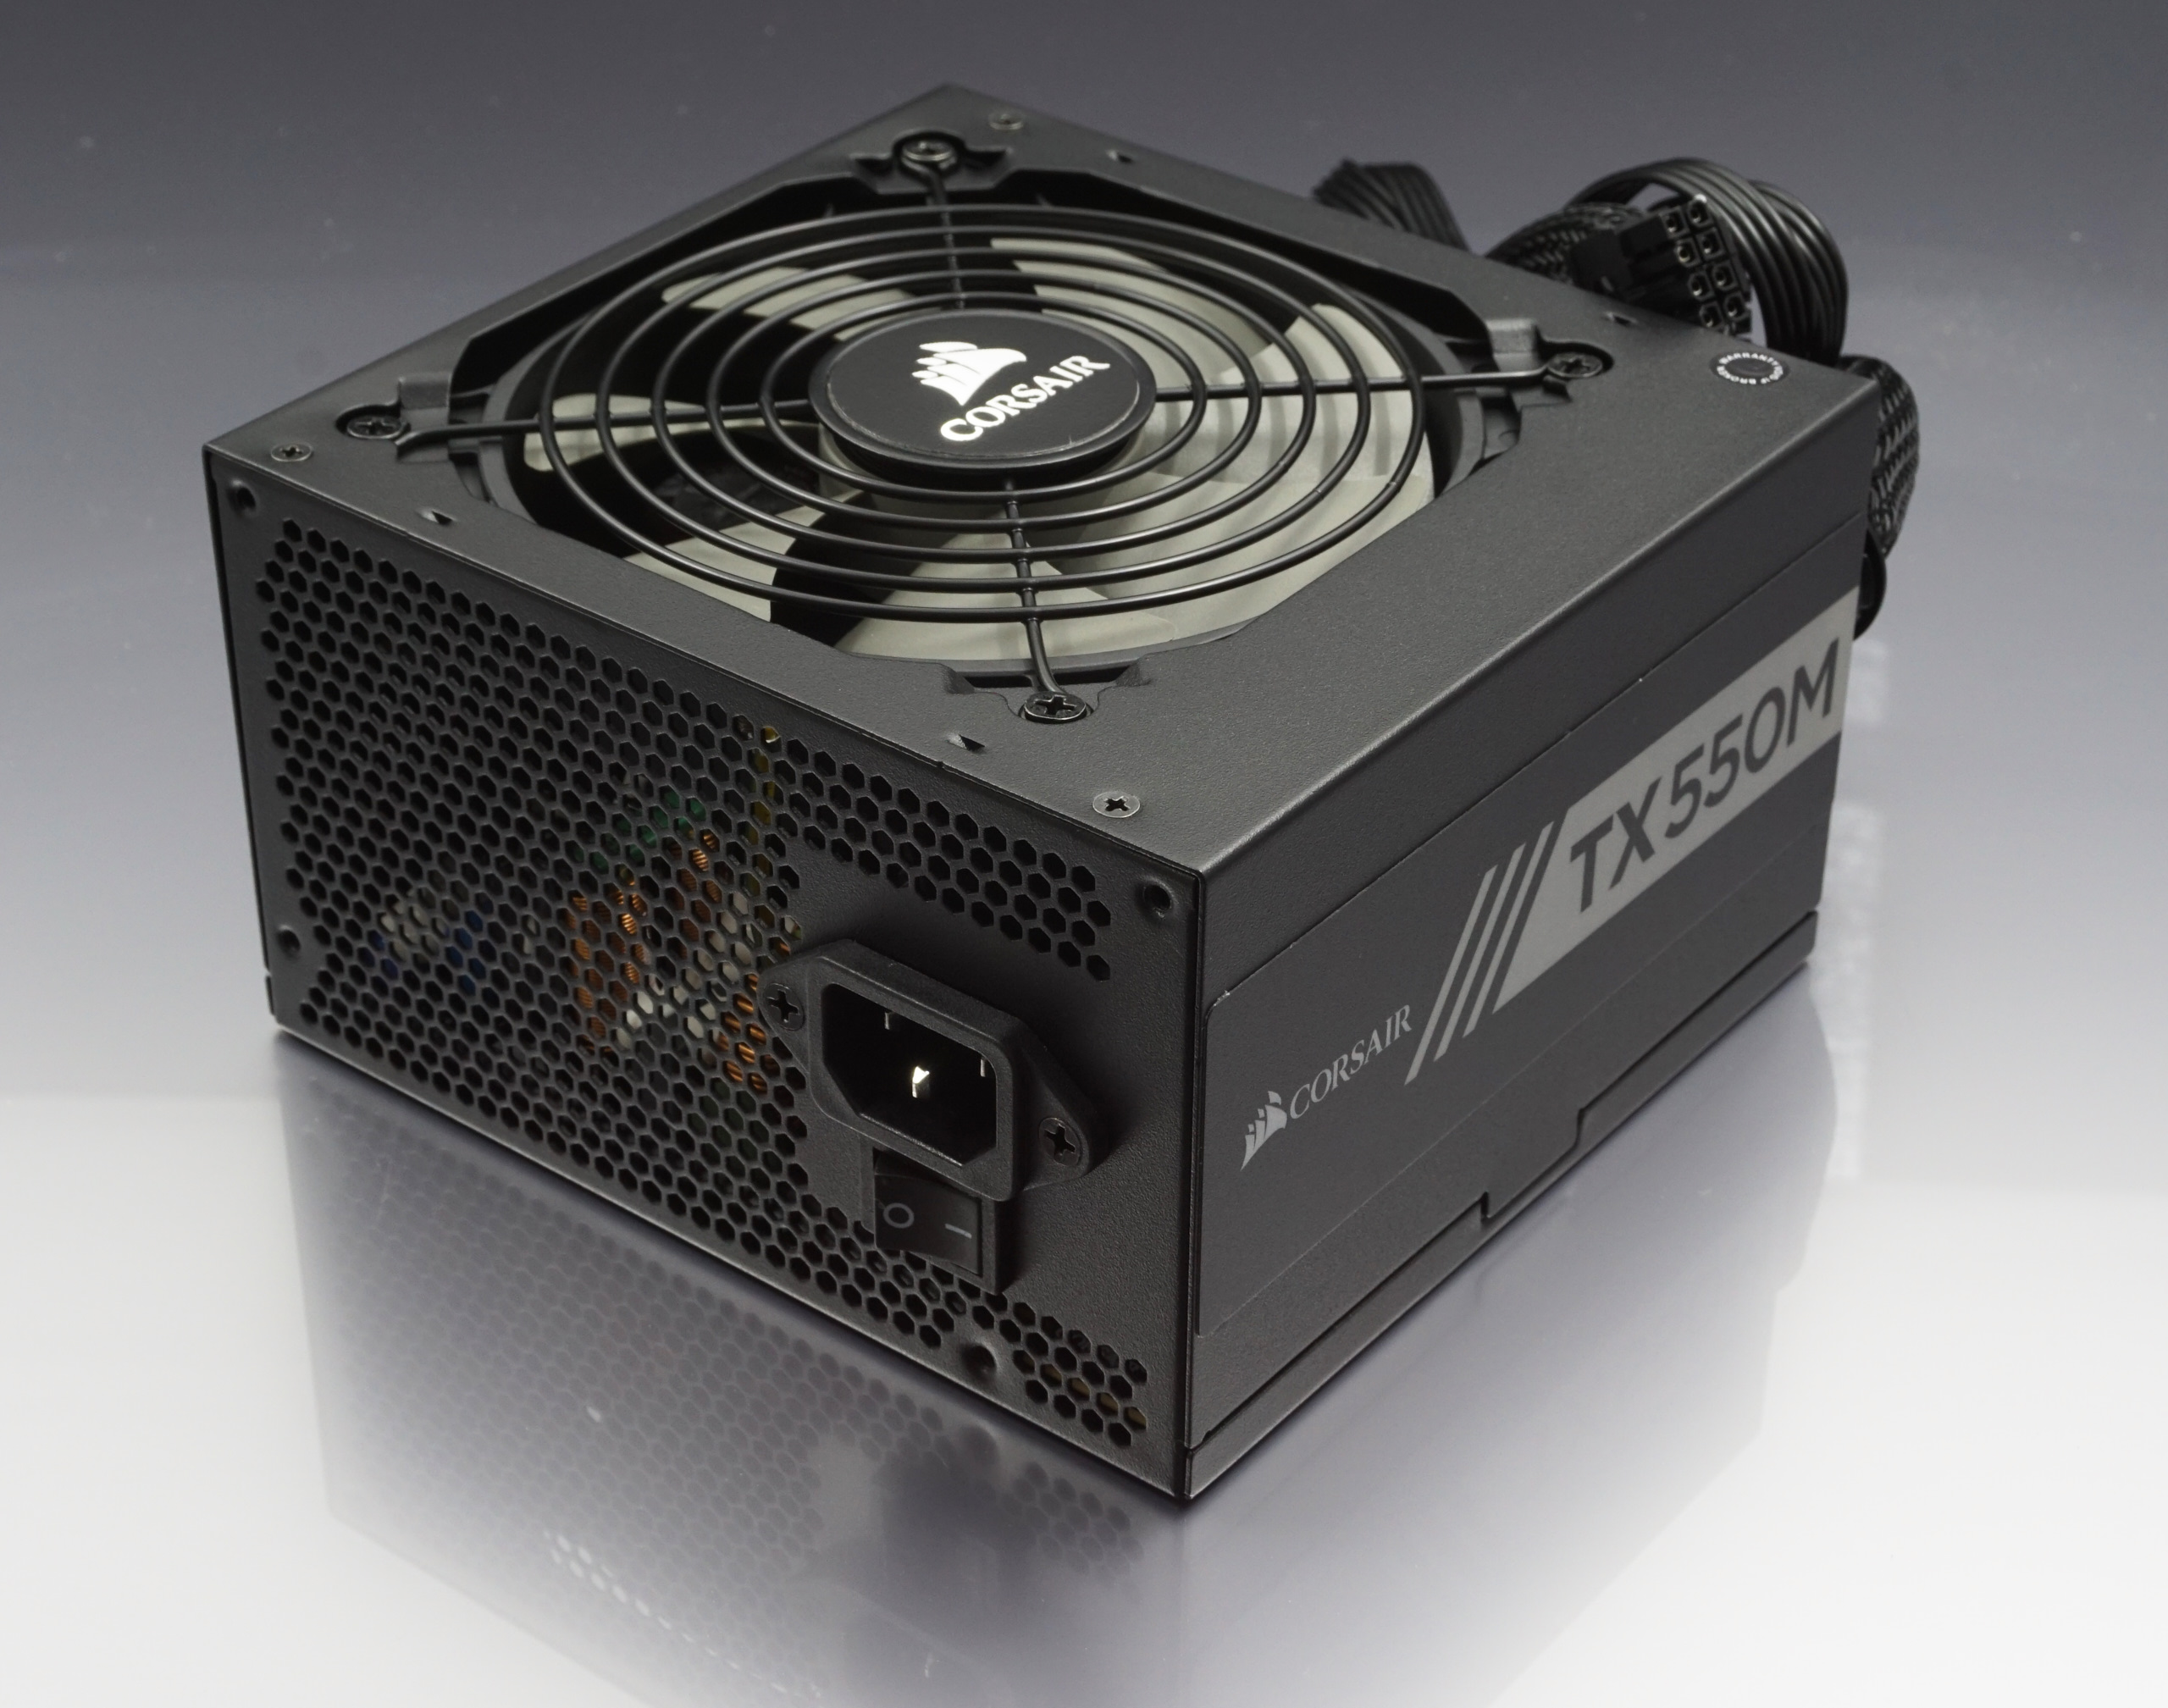 The Corsair TX550M PSU - The $80 Power Supply for Almost Everyone ...